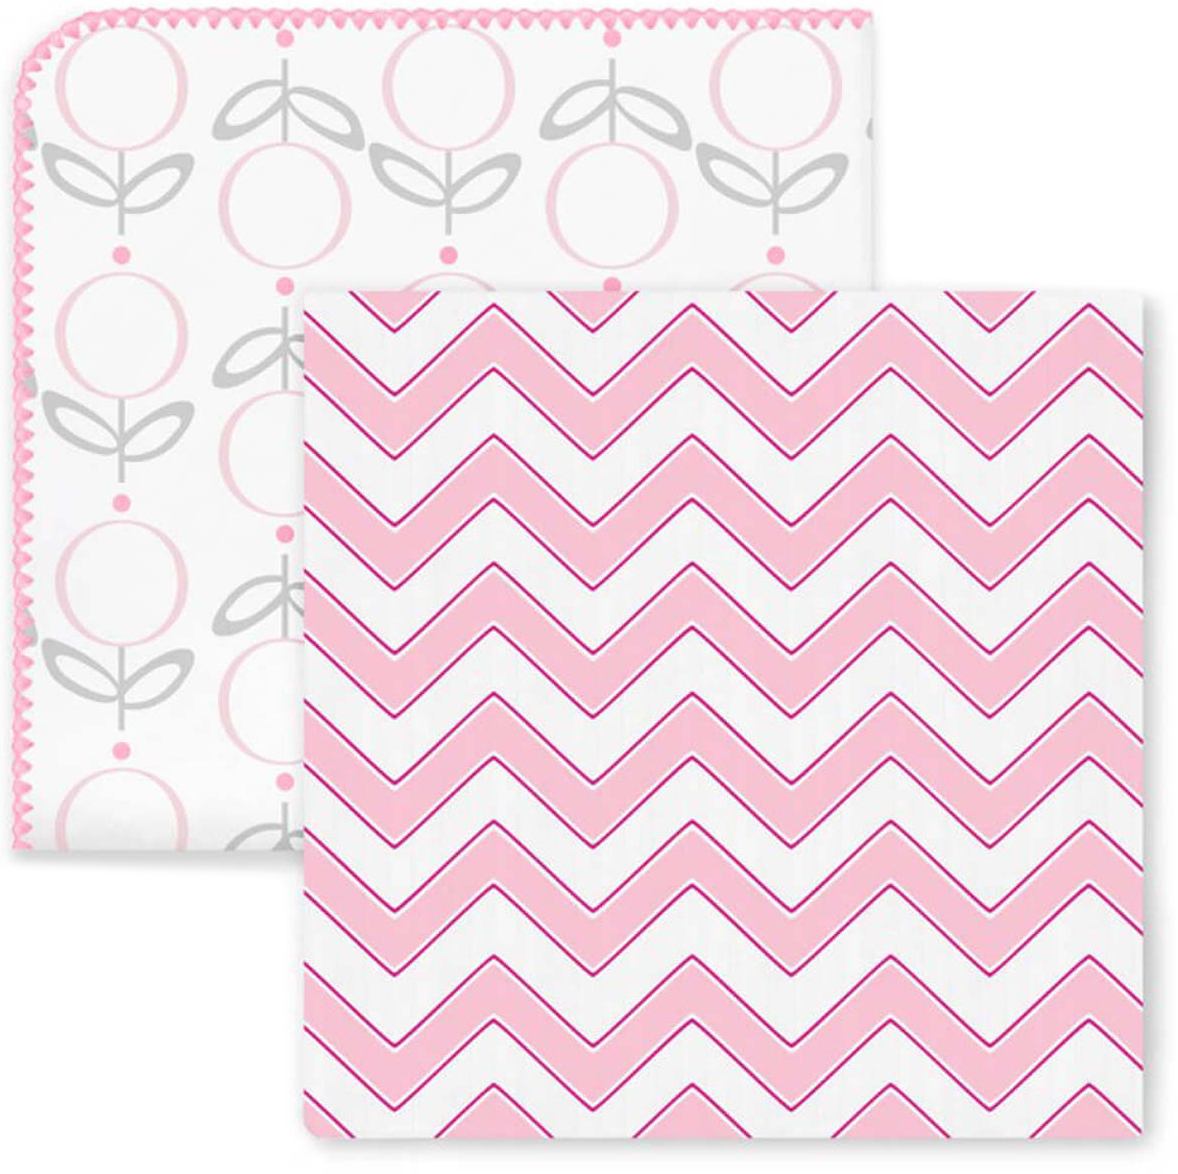 SwaddleDesigns Набор пеленок Swaddle Duo Lolli Chevron Pink 2 шт набор пеленок swaddledesigns swaddle duo pstl pink modern